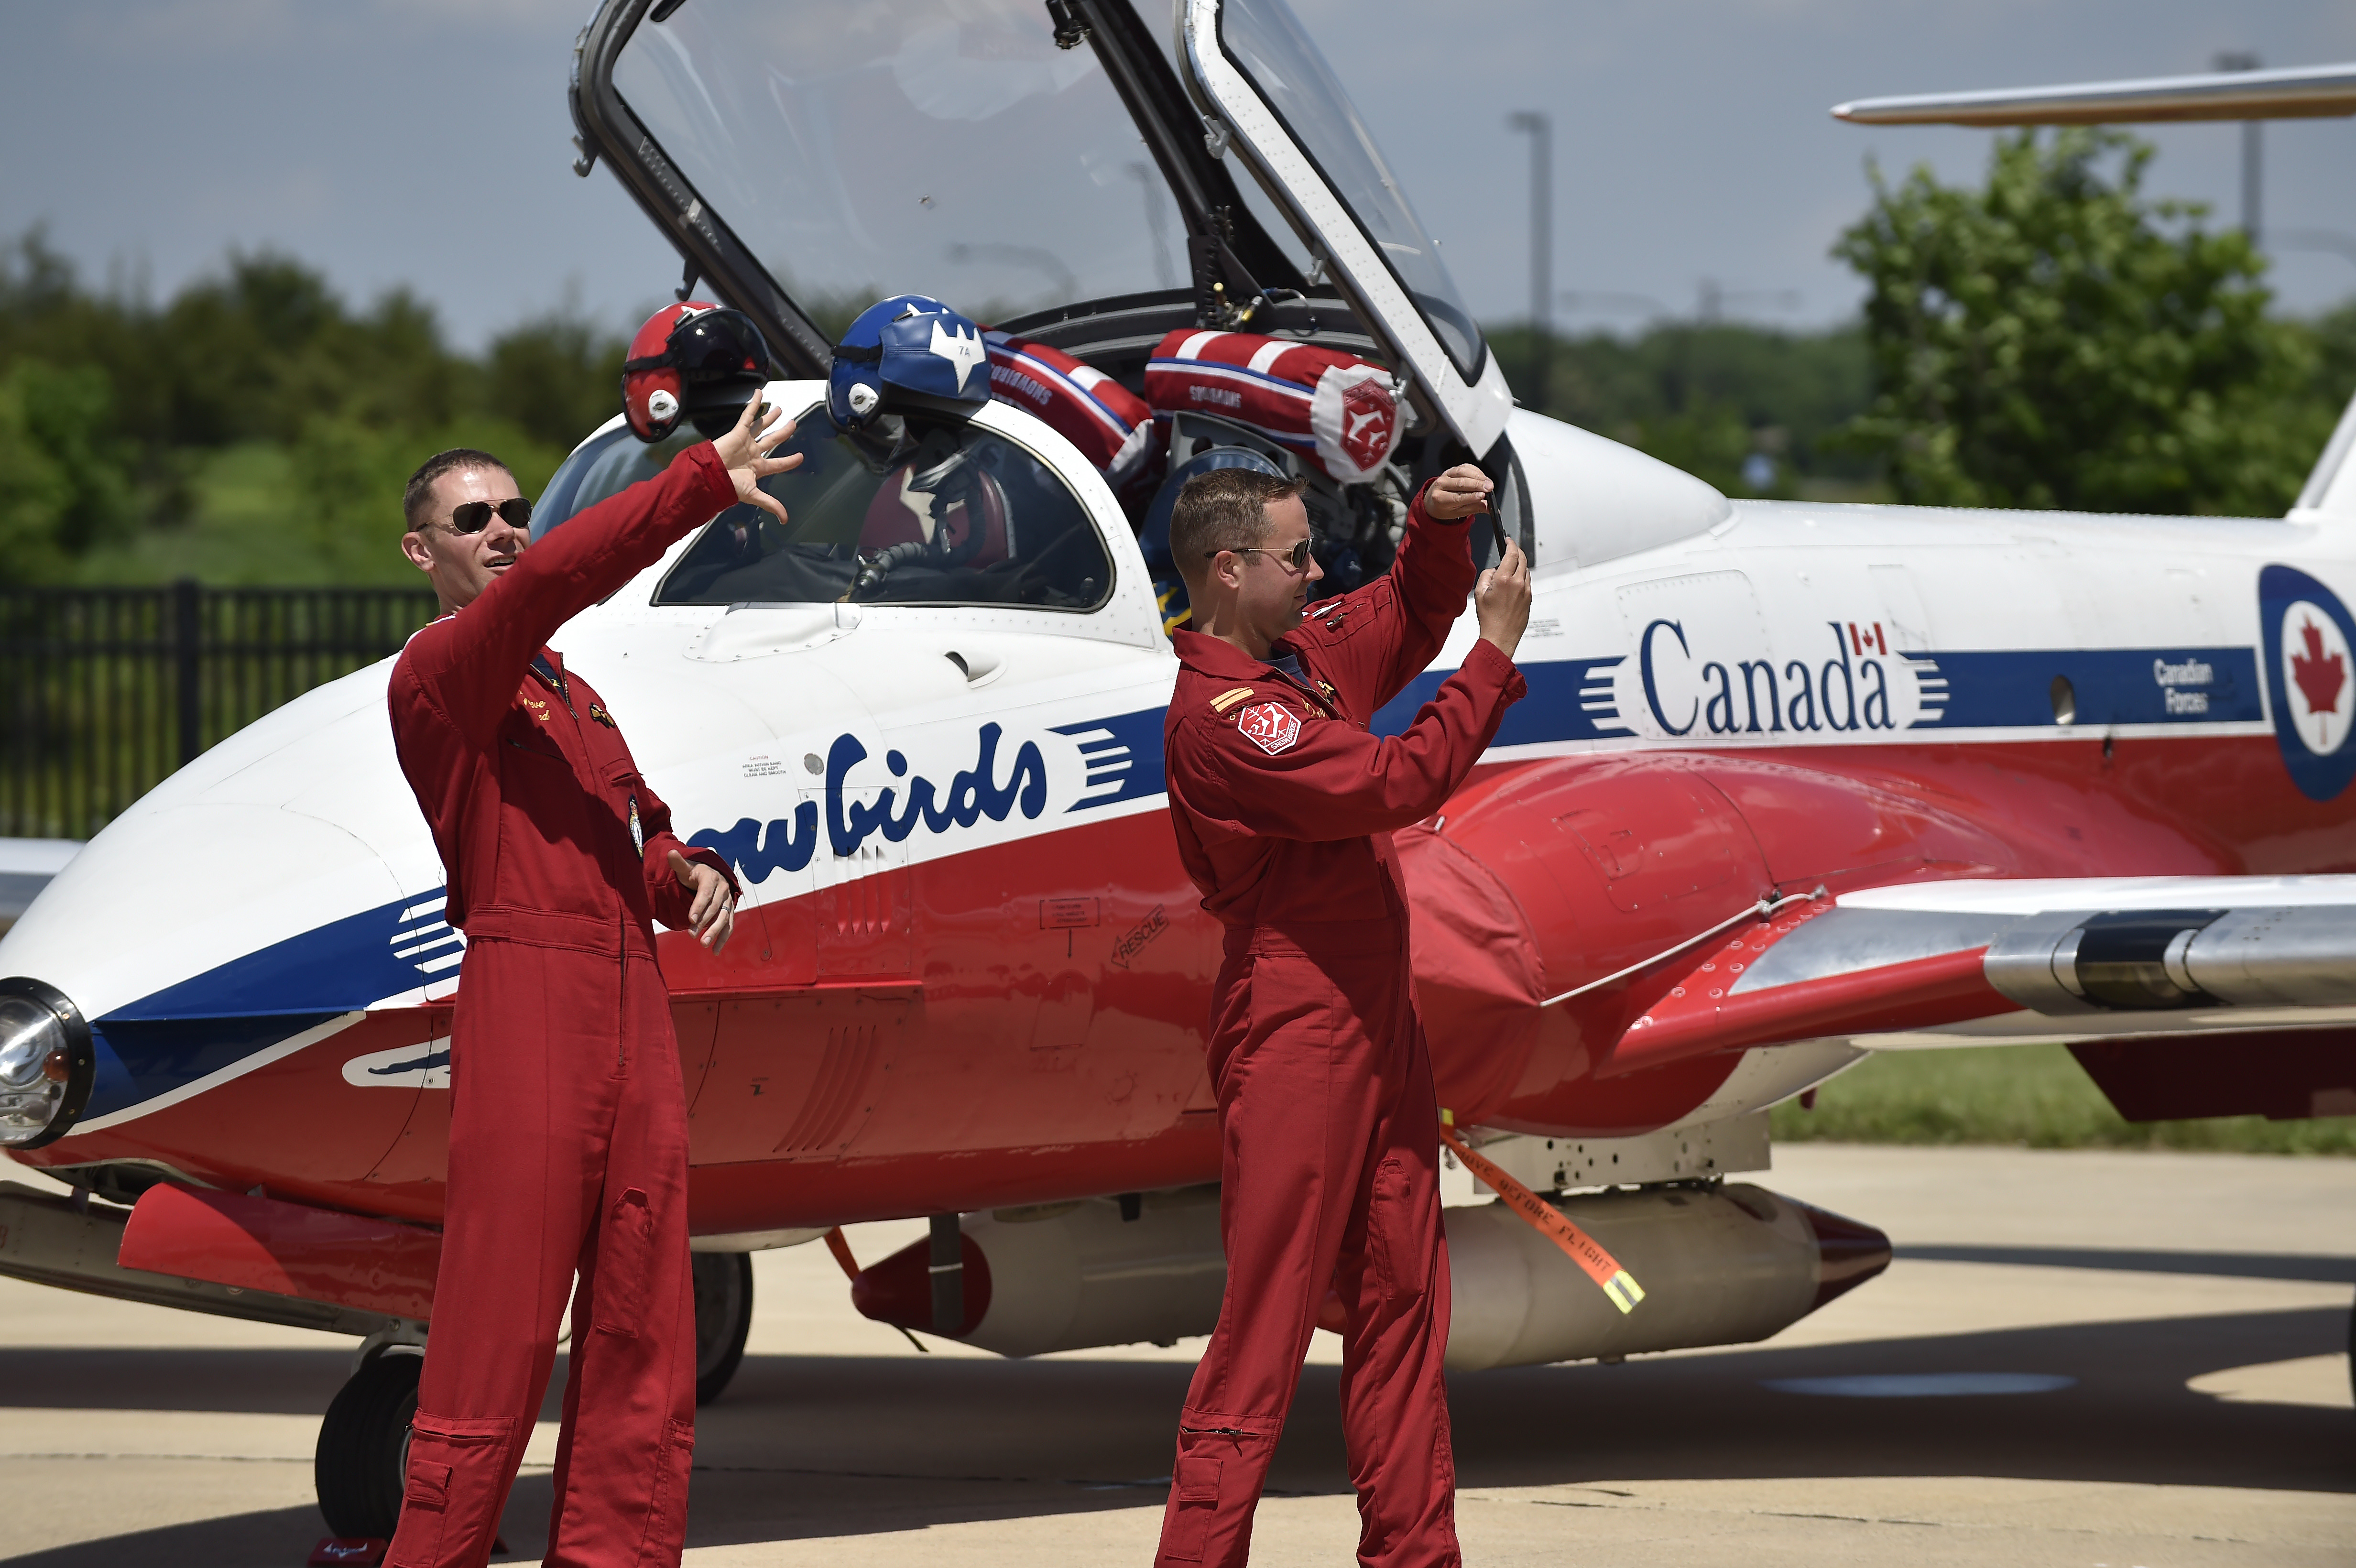 Snowbird pilots take photos after taxiing to the nearby Steven F. Udvar-Hazy Center ramp for an open house. Photo by David Tulis.